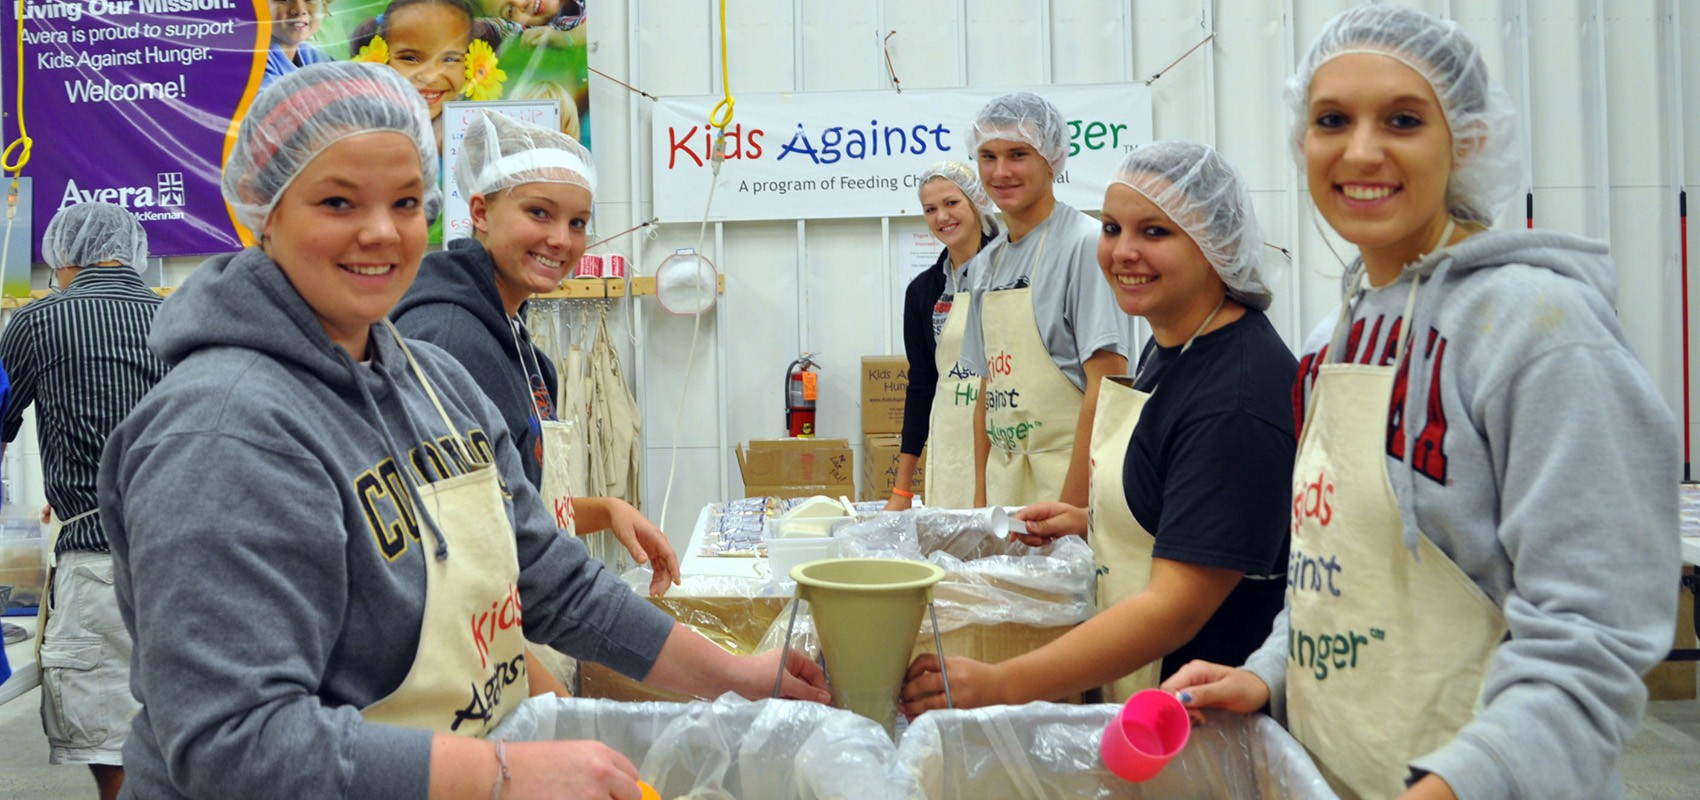 USF students serving at Kids Against Hunger.